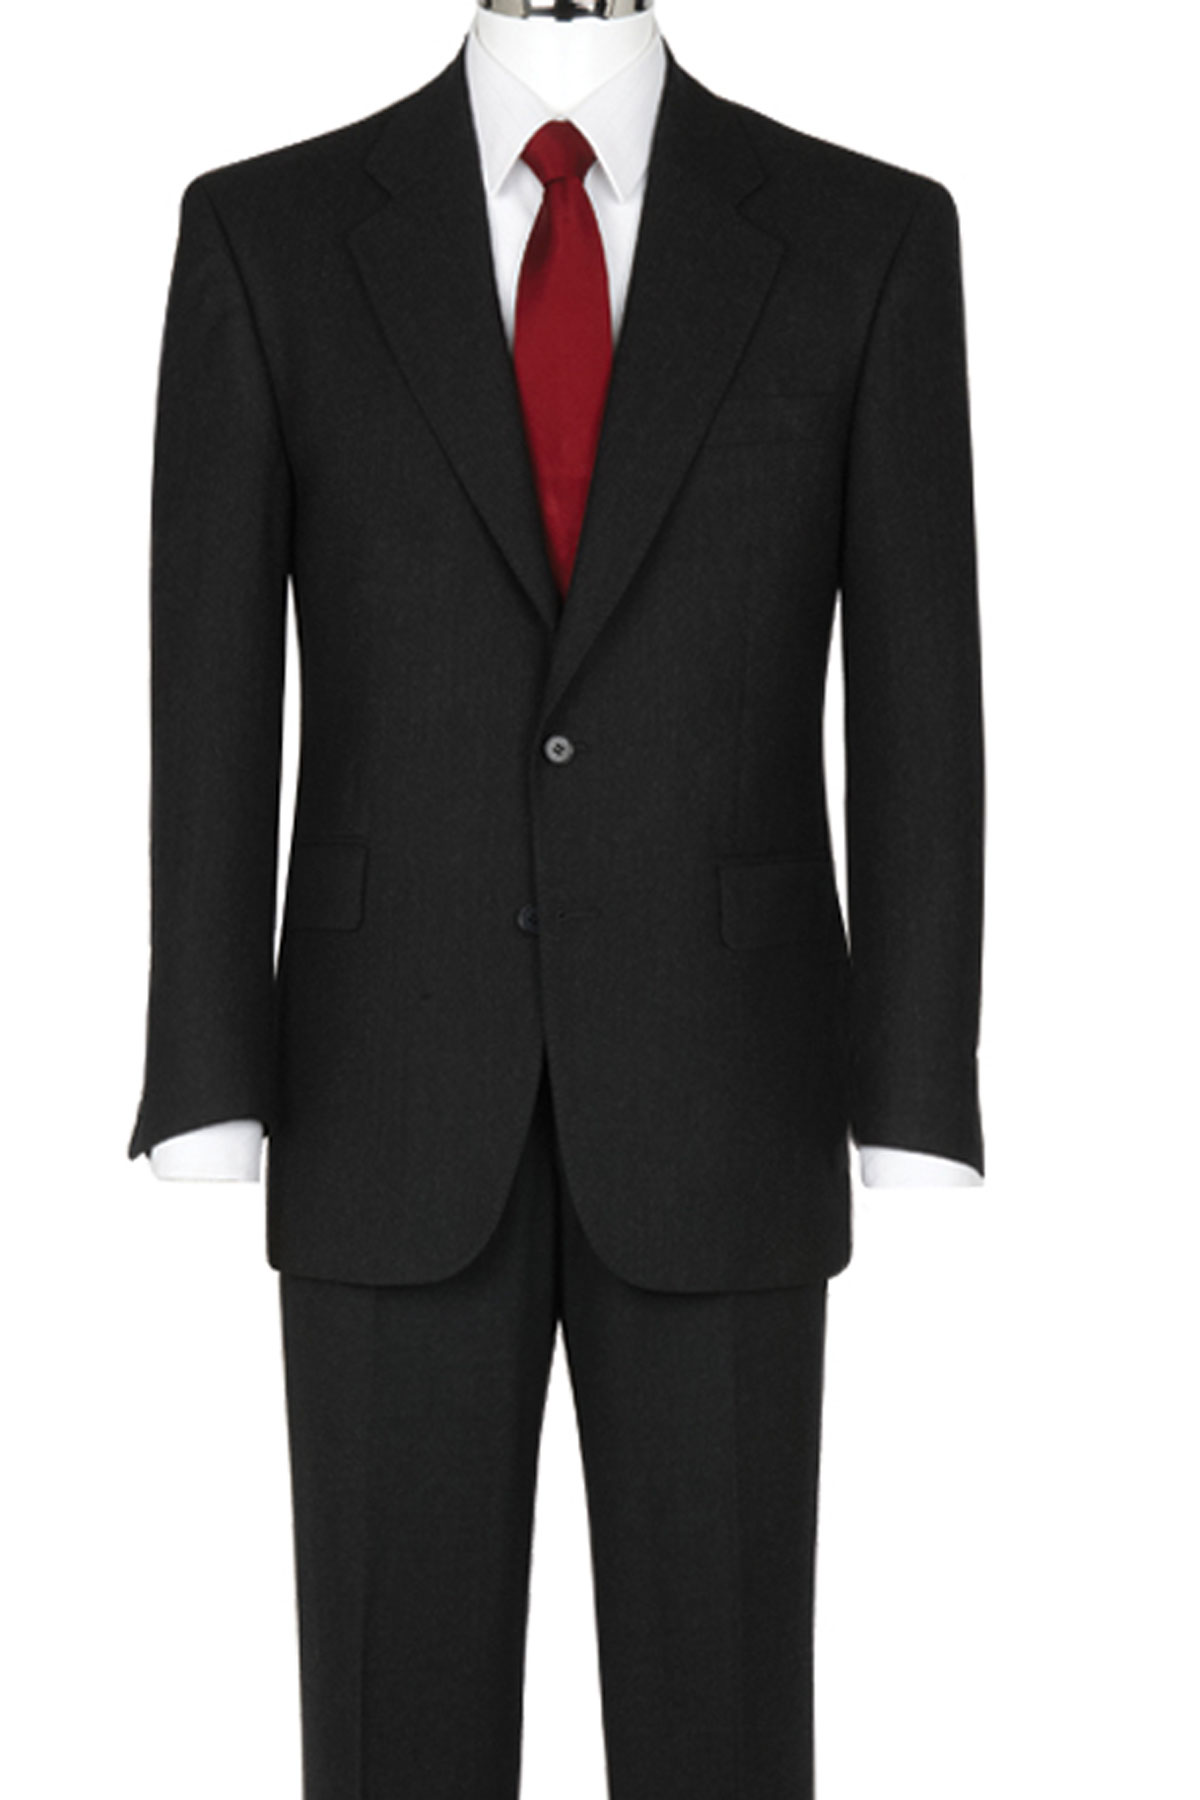 Suit Jacket Pictures to Pin on Pinterest